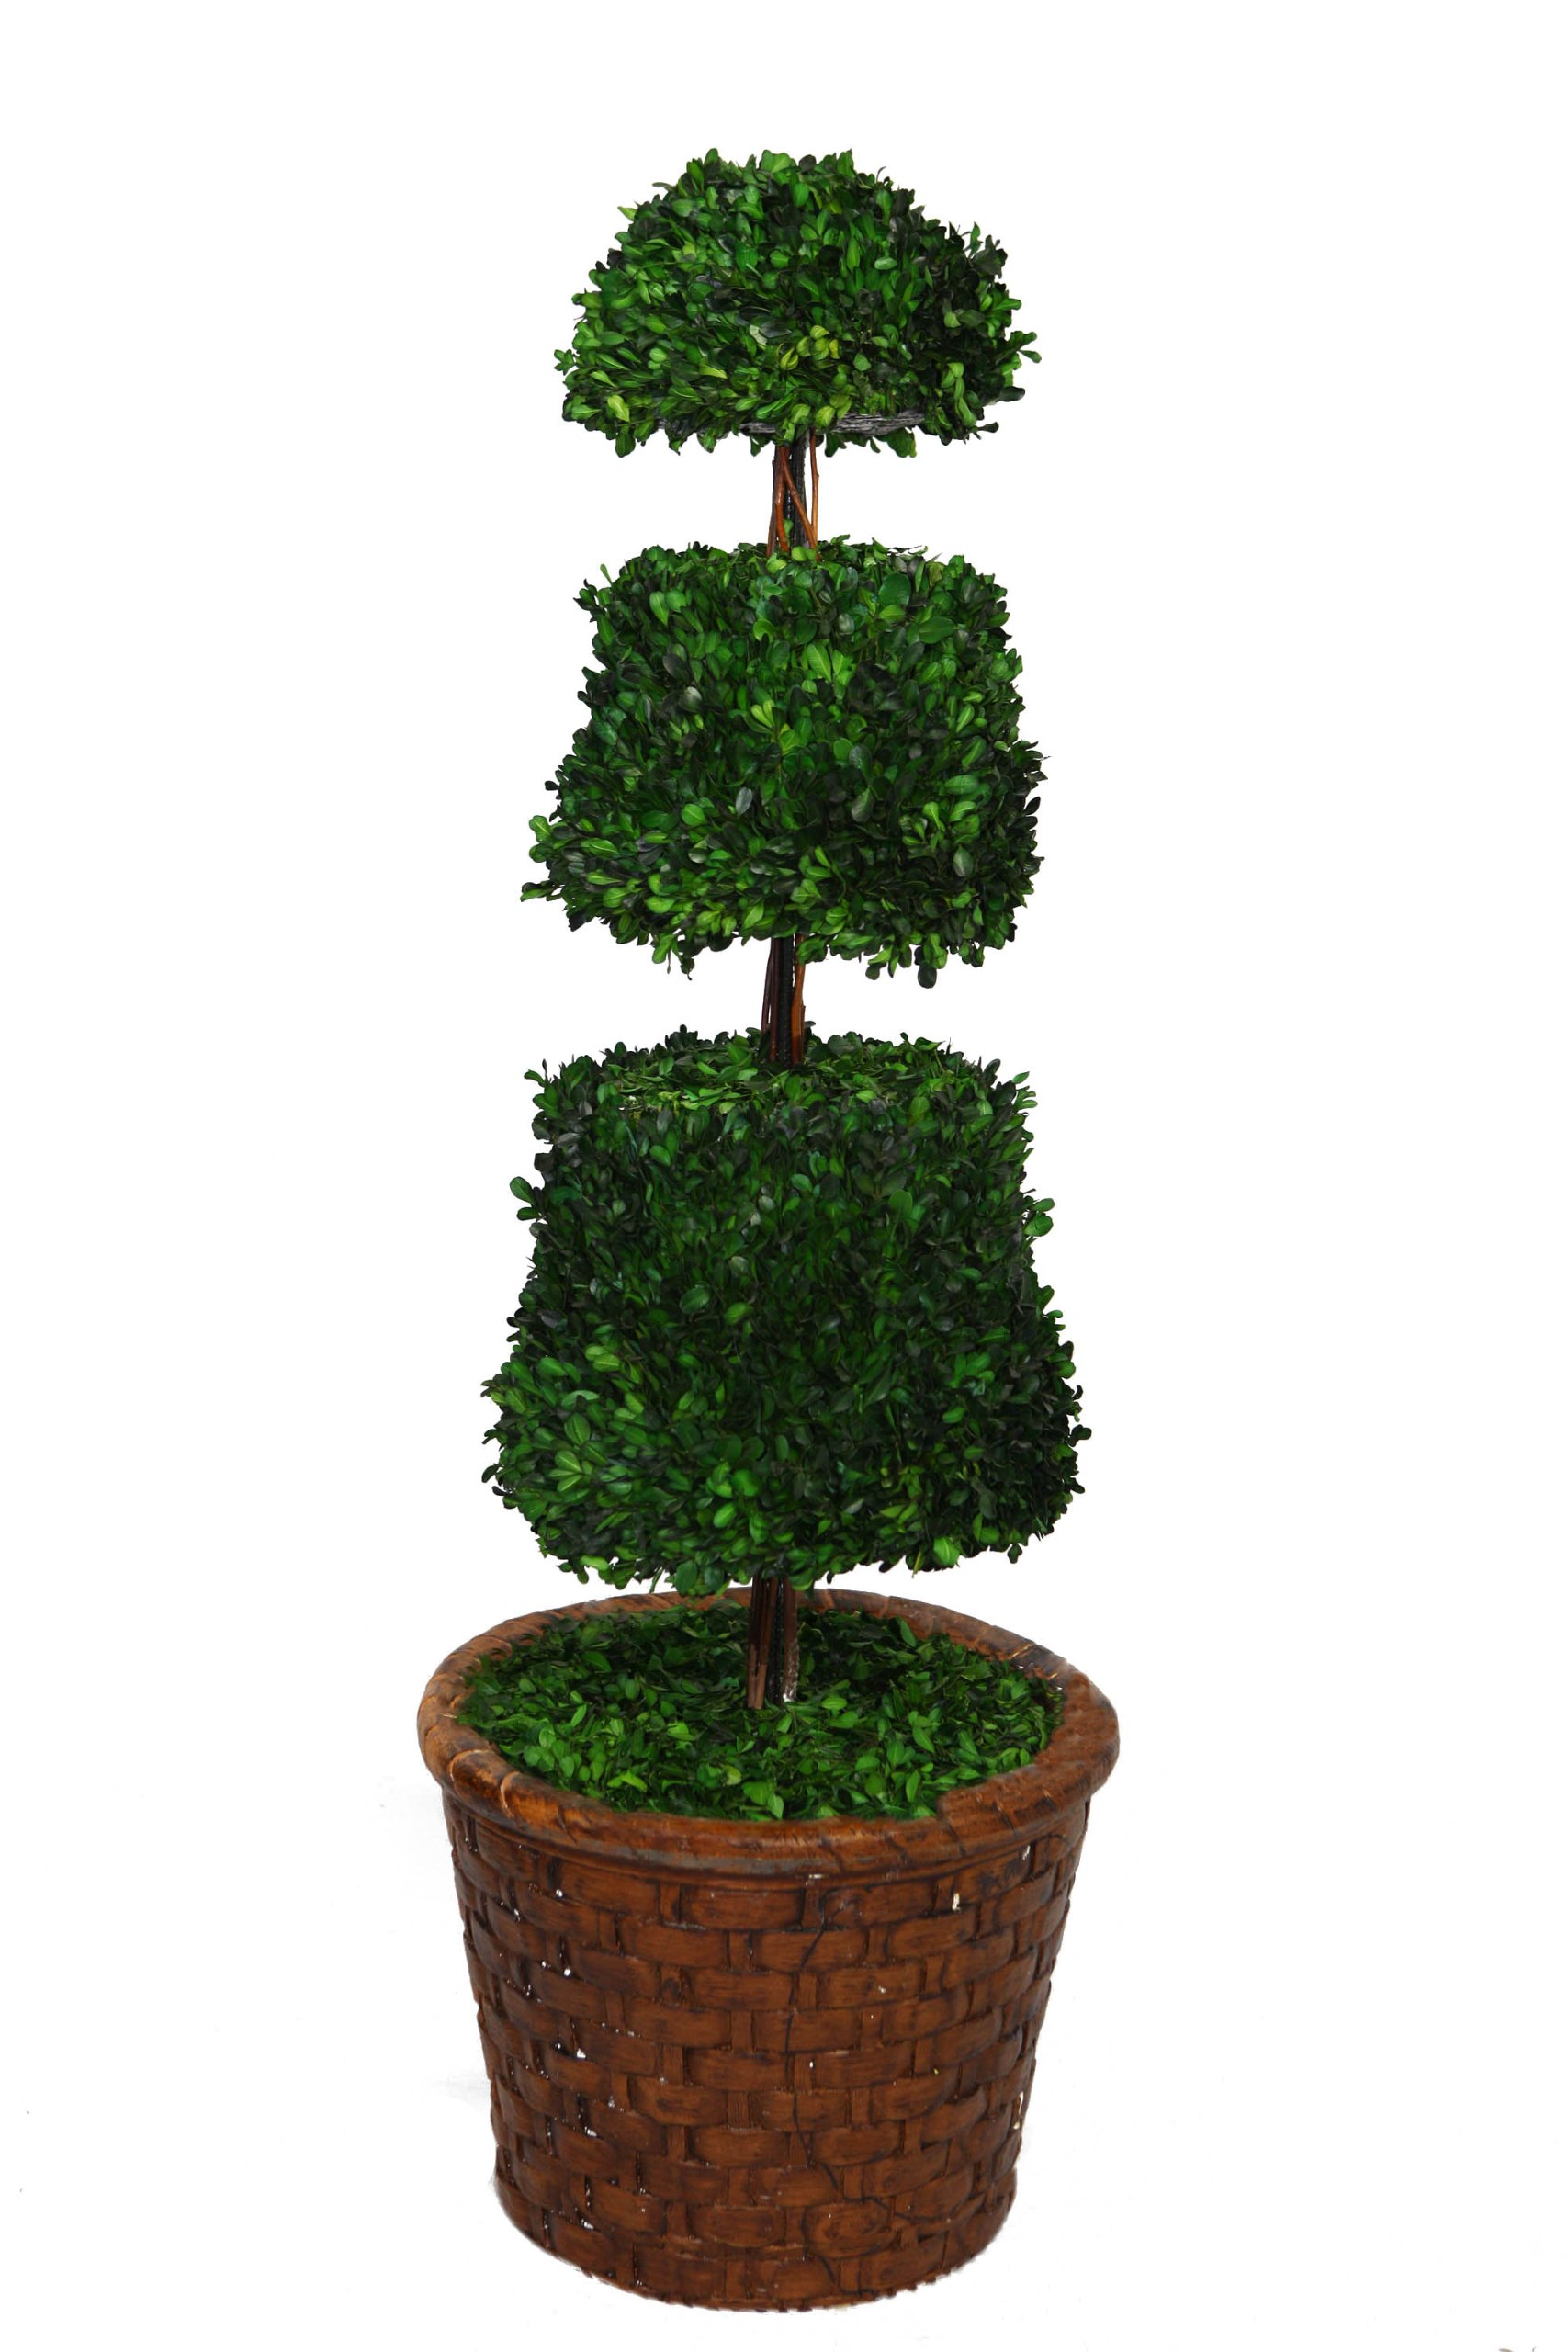 Laura Ashley 49 Inch Tall Preserved Natural Spiral Boxwood Cone Topiary in 17 Inch Fiberstone Planter